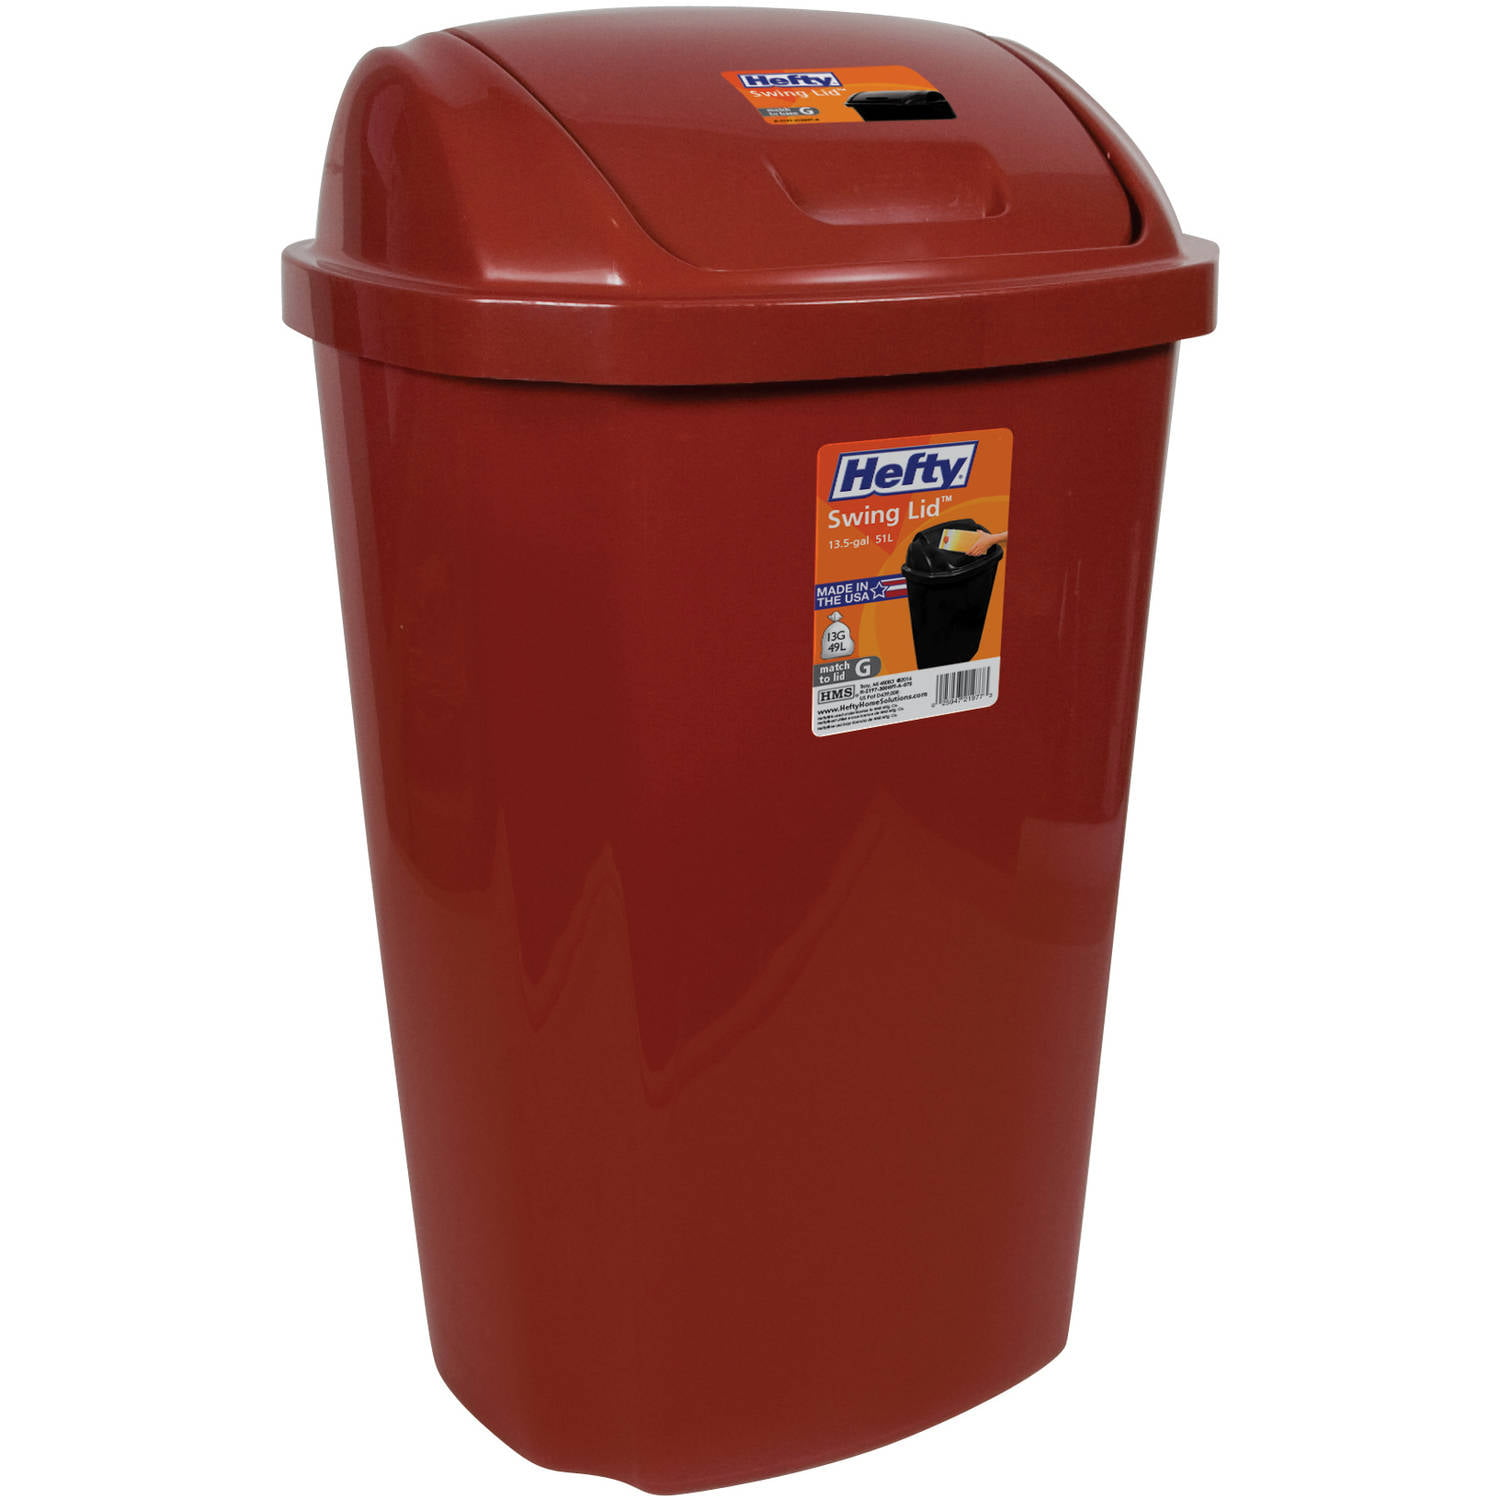 decorative indoor trash cans. Hefty 13 5 Gallon Swing Lid Trash Can  Red Cans Recycle Bins Walmart com